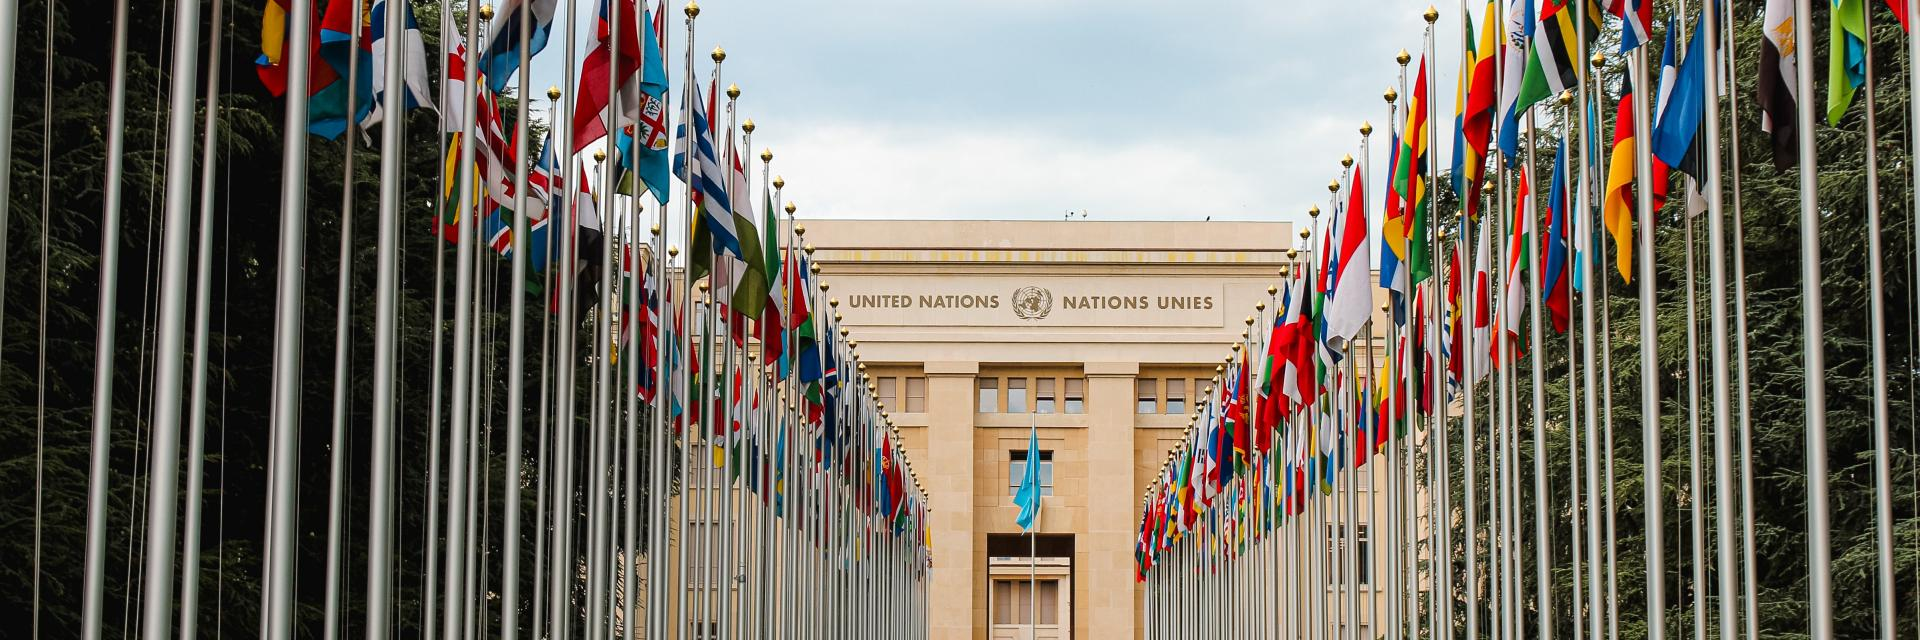 United Nations building with international flags.